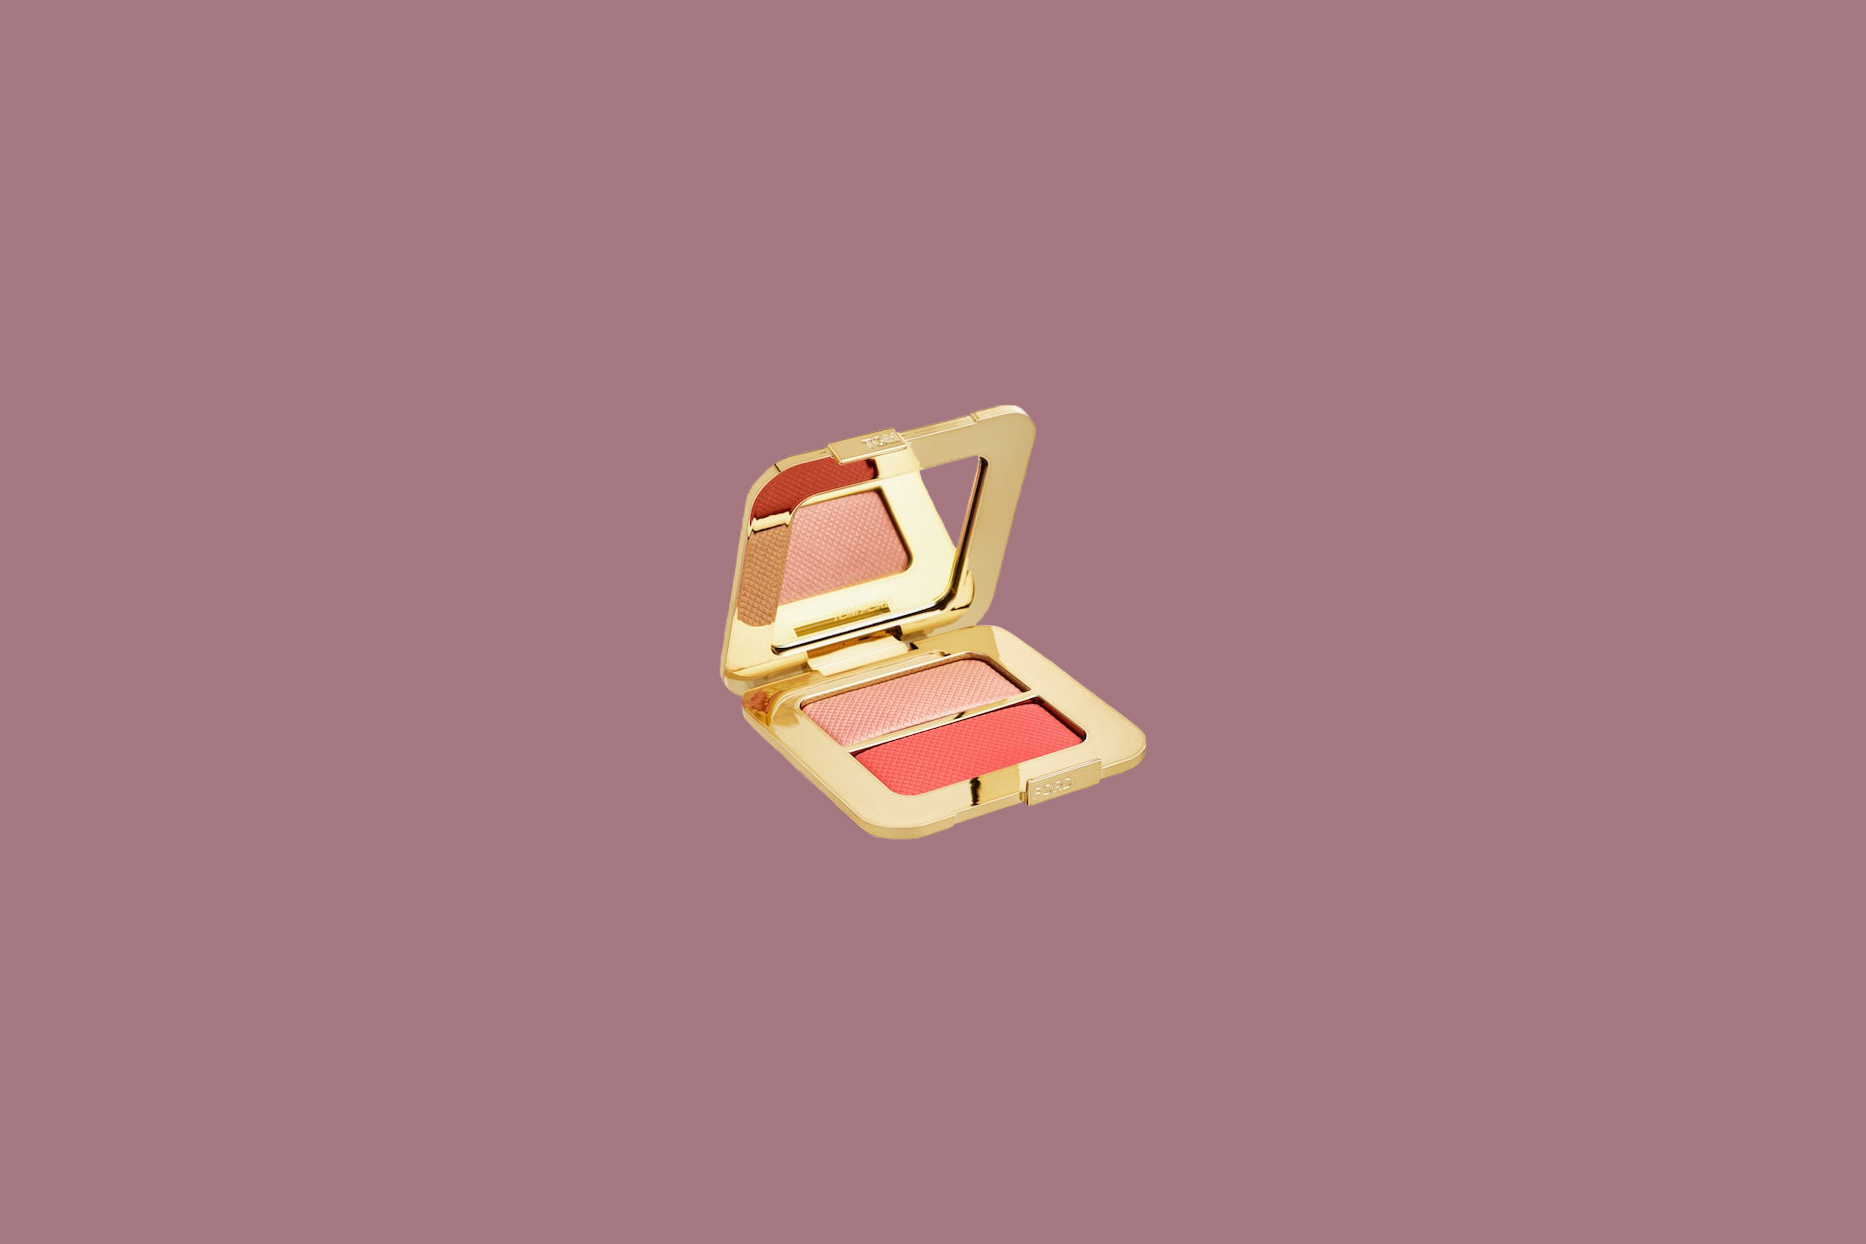 blush duo in gold case with mirror